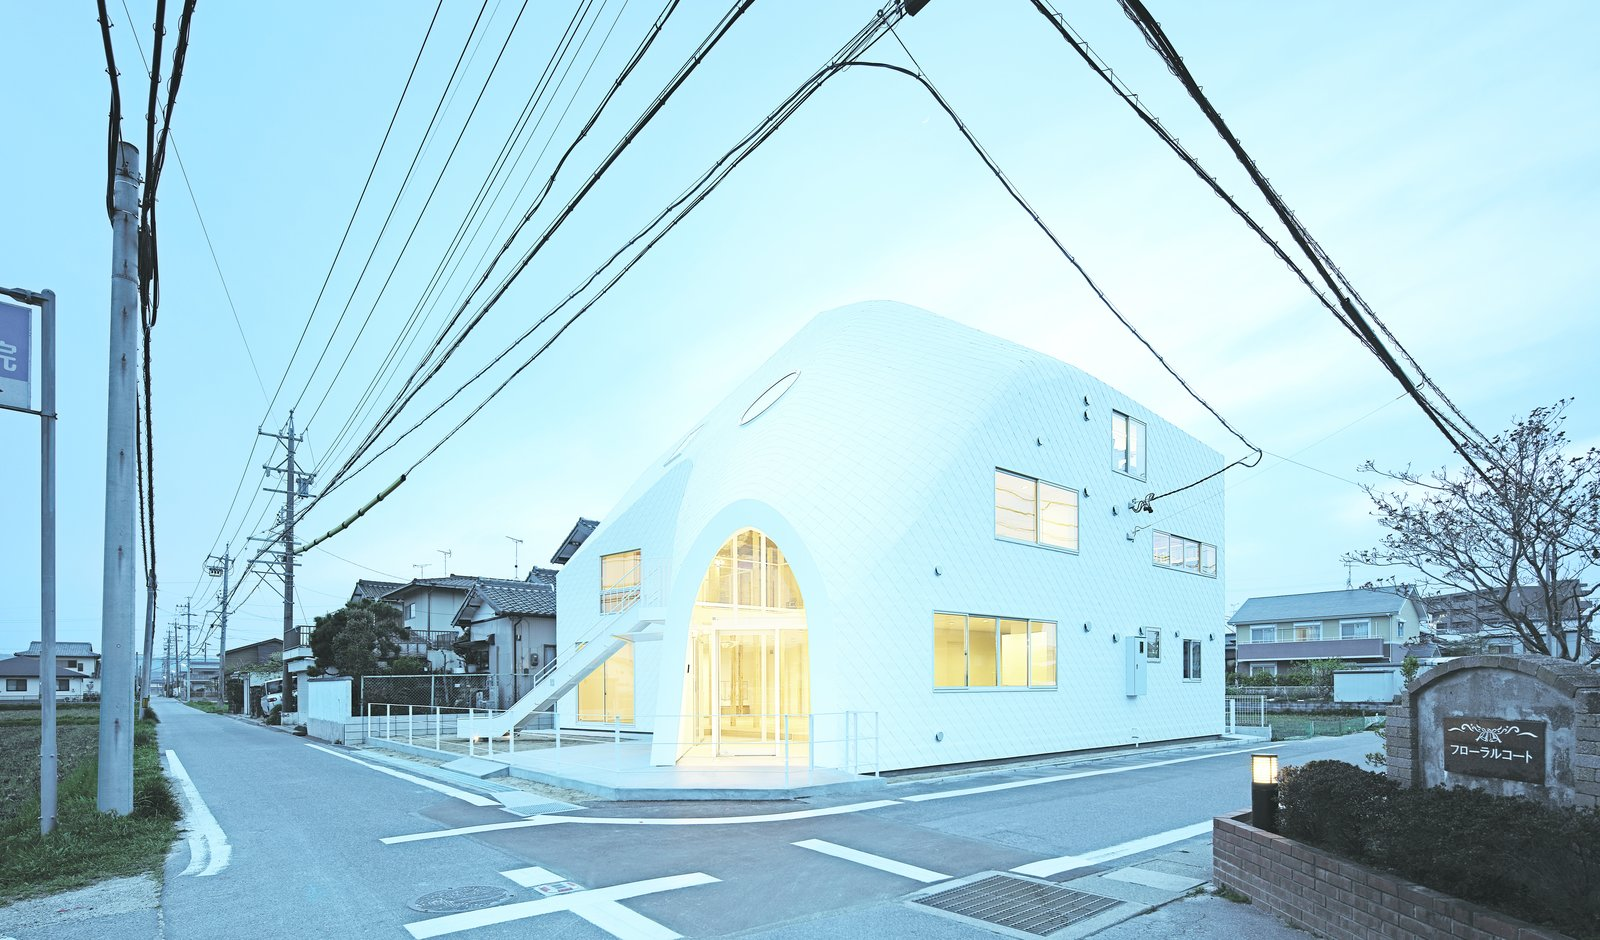 A kindergarten Okazaki, Japan, Clover House is named for its previous life. Originally a 1,100-square-foot residence in a traditional Japanese style, the structure was transformed by MAD Architects in a sculptural example of adaptive reuse wrapped in asphalt shingles. The windows were oriented to bring sunlight and shadow into the space in dynamic ways.  Picture by Koji Fuji   Discover the Fantastical Future Vision of a Beijing Architect by Heather Corcoran